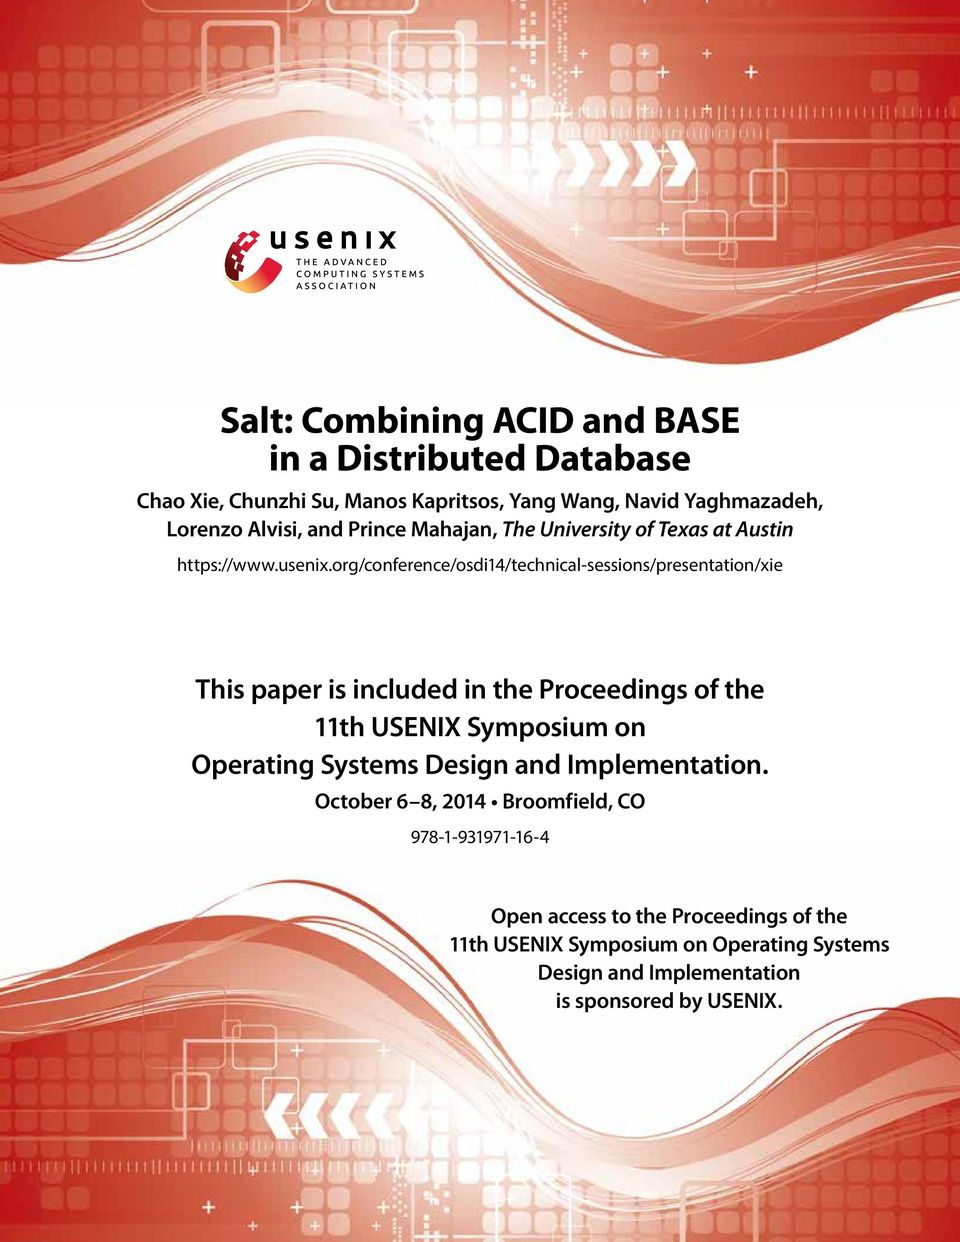 org/conference/osdi14/technical-sessions/presentation/xie This paper is included in the Proceedings of the 11th USENIX Symposium on Operating